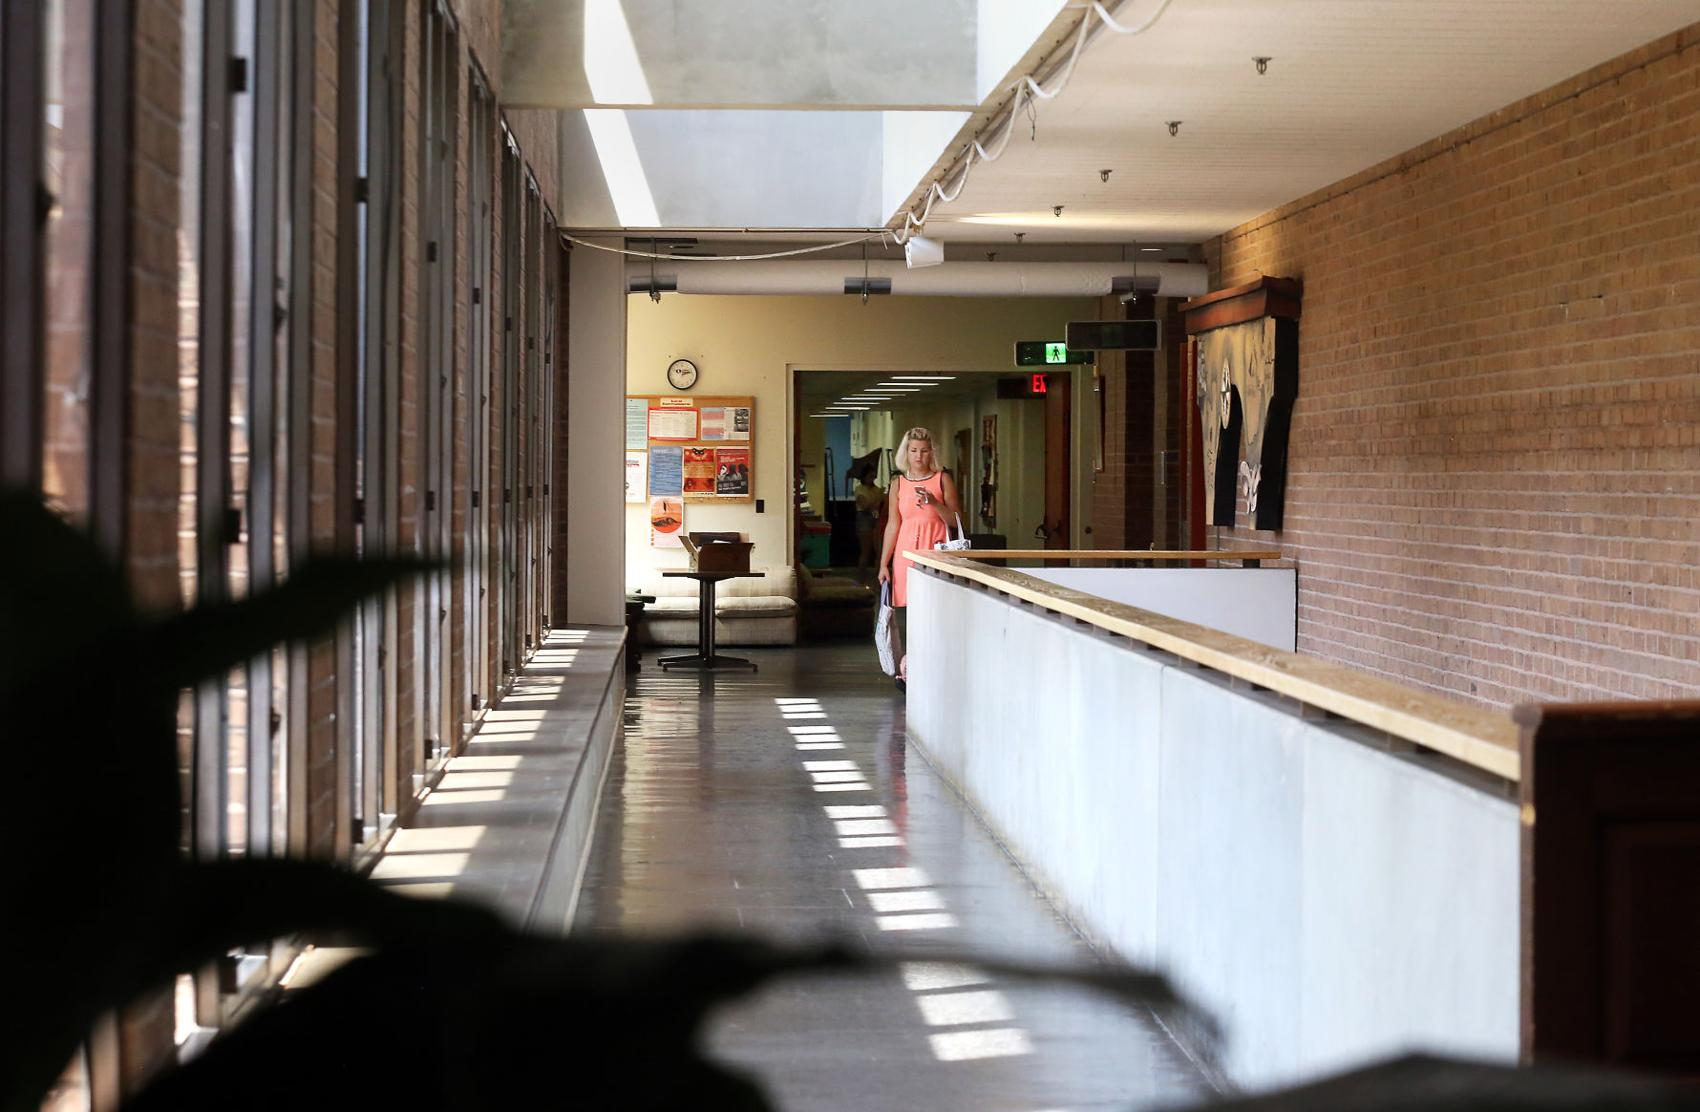 A woman makes her way down the second floor hallway of the College of Charleston's Albert Simons Center for the Arts on Monday, August 12, 2019. Brad Nettles/Staff - Brad Nettles bnettles@postandcourier.com